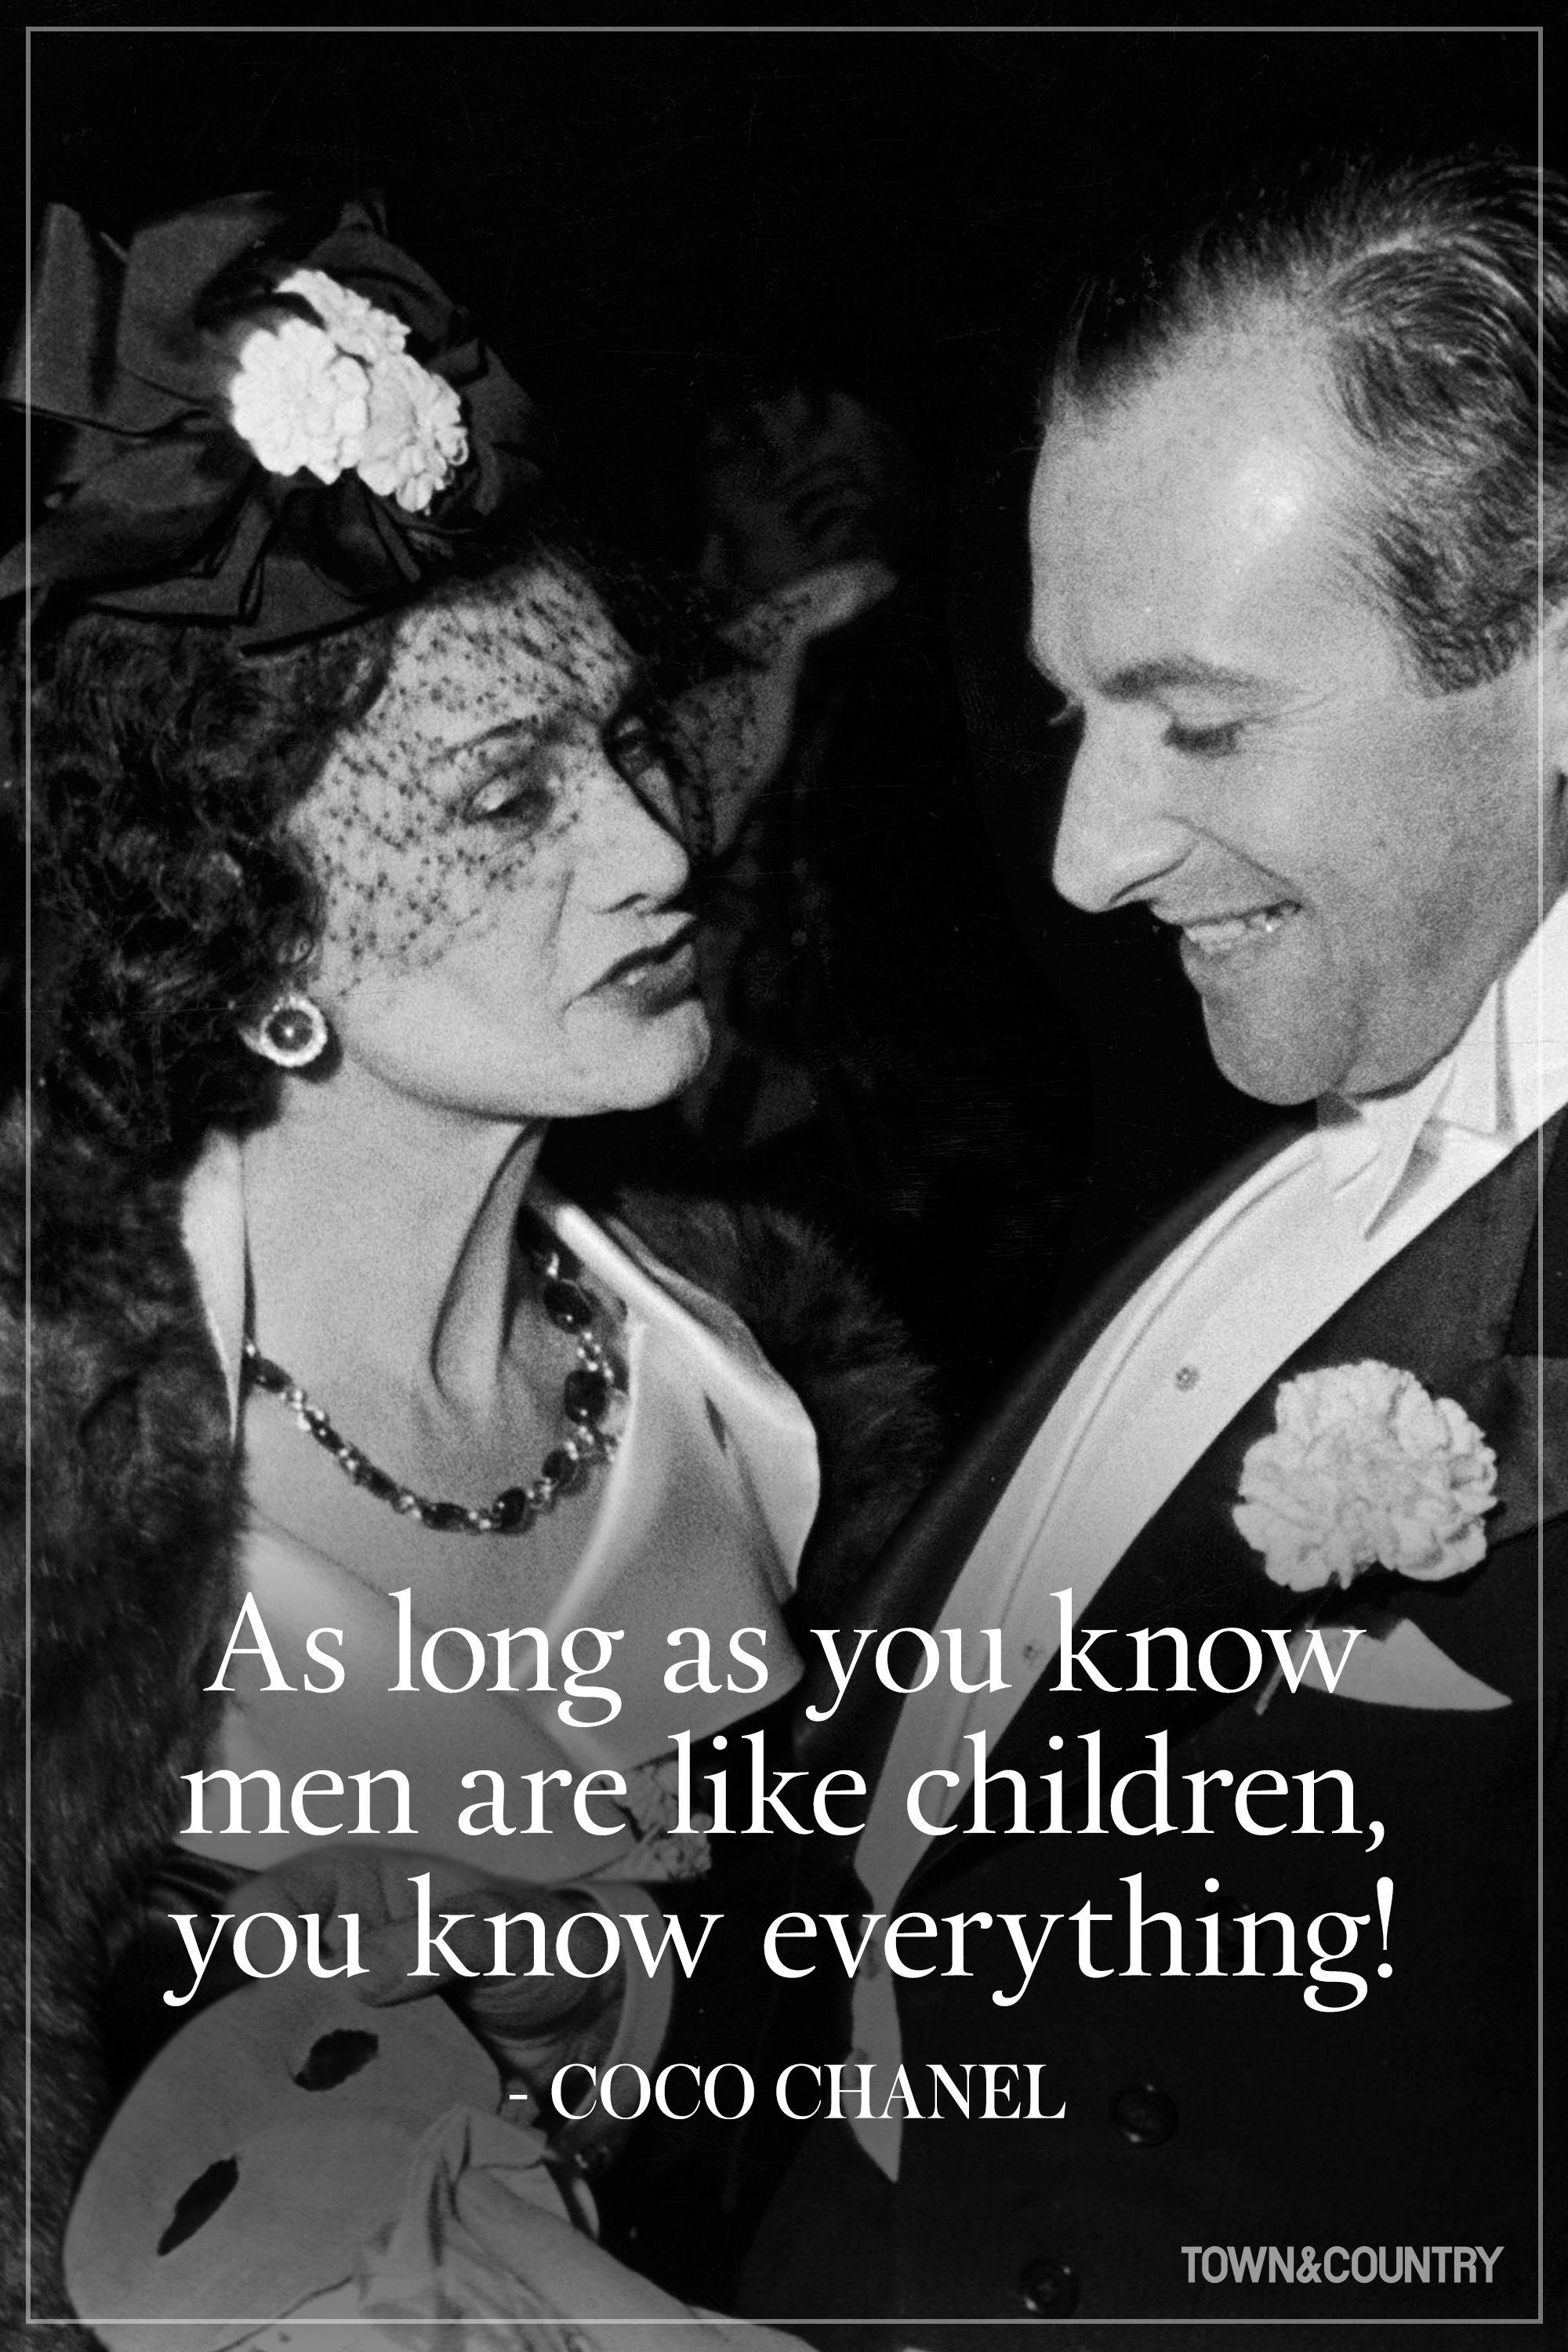 14 Coco Chanel Quotes Every Woman Should Live By Coco chanel